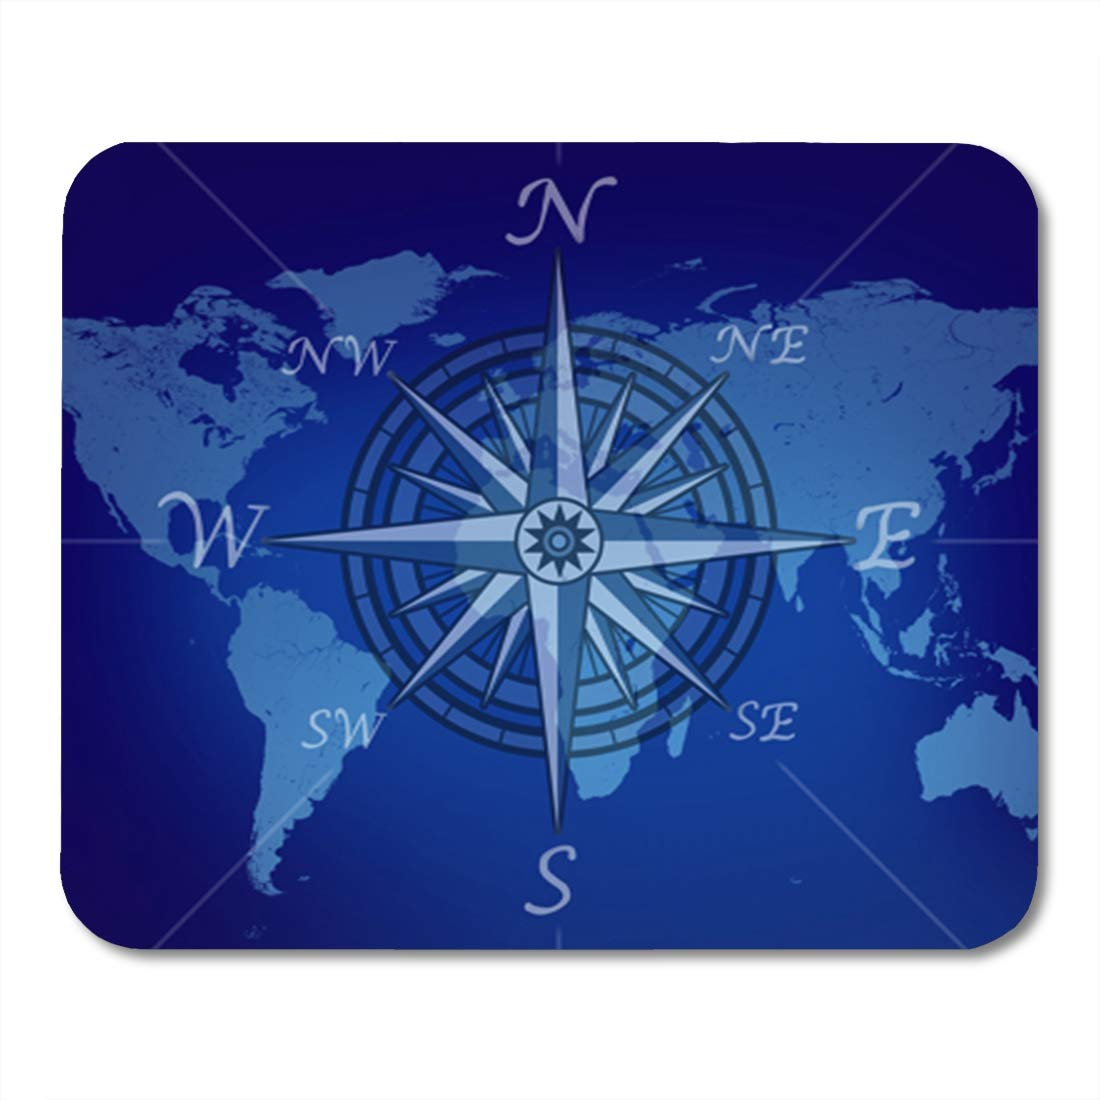 Map Of The World With Compass.Amazon Com Semtomn Gaming Mouse Pad Map Of The World With Compass